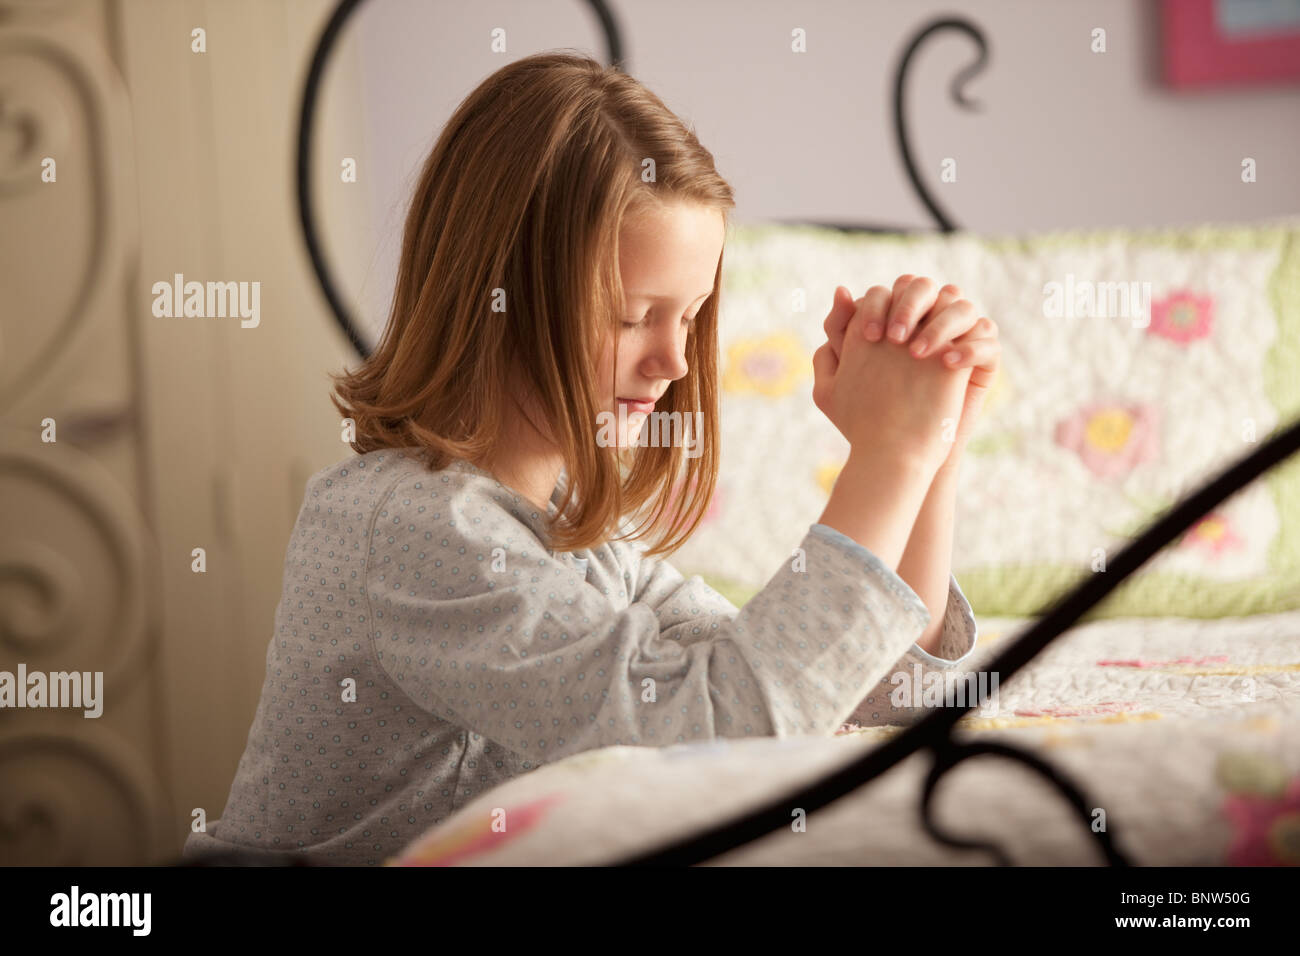 Young Girl Praying In The Park Photo Premium Download